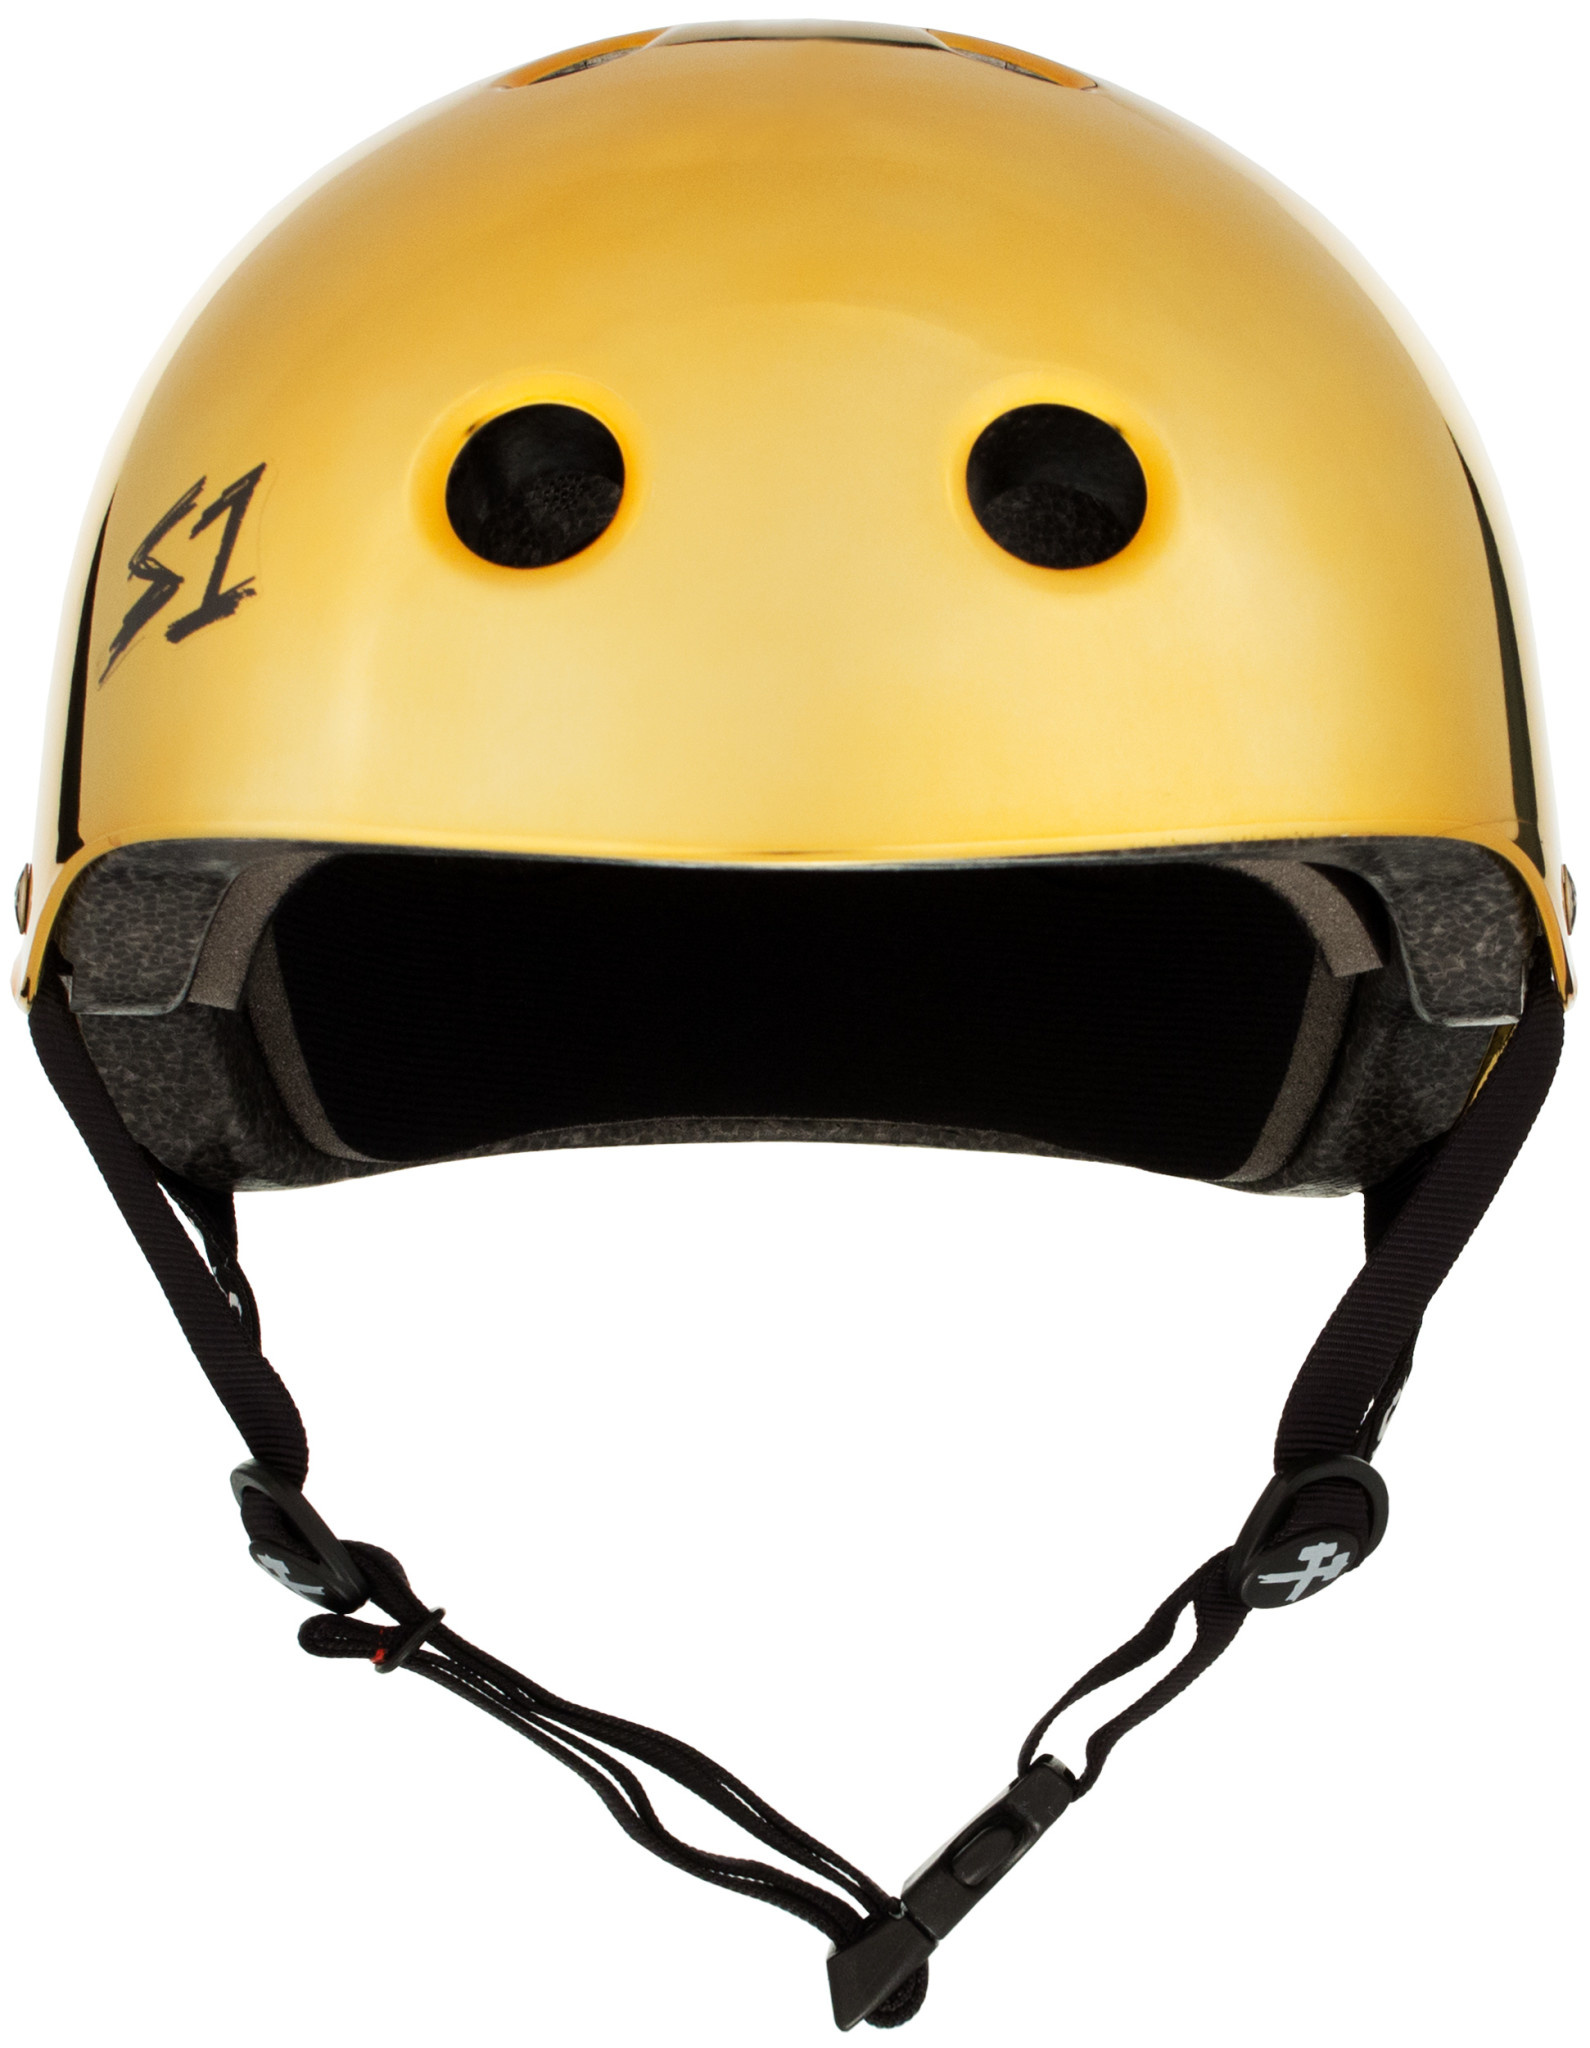 S-1 Lifer Helmet - Gold Mirror Gloss